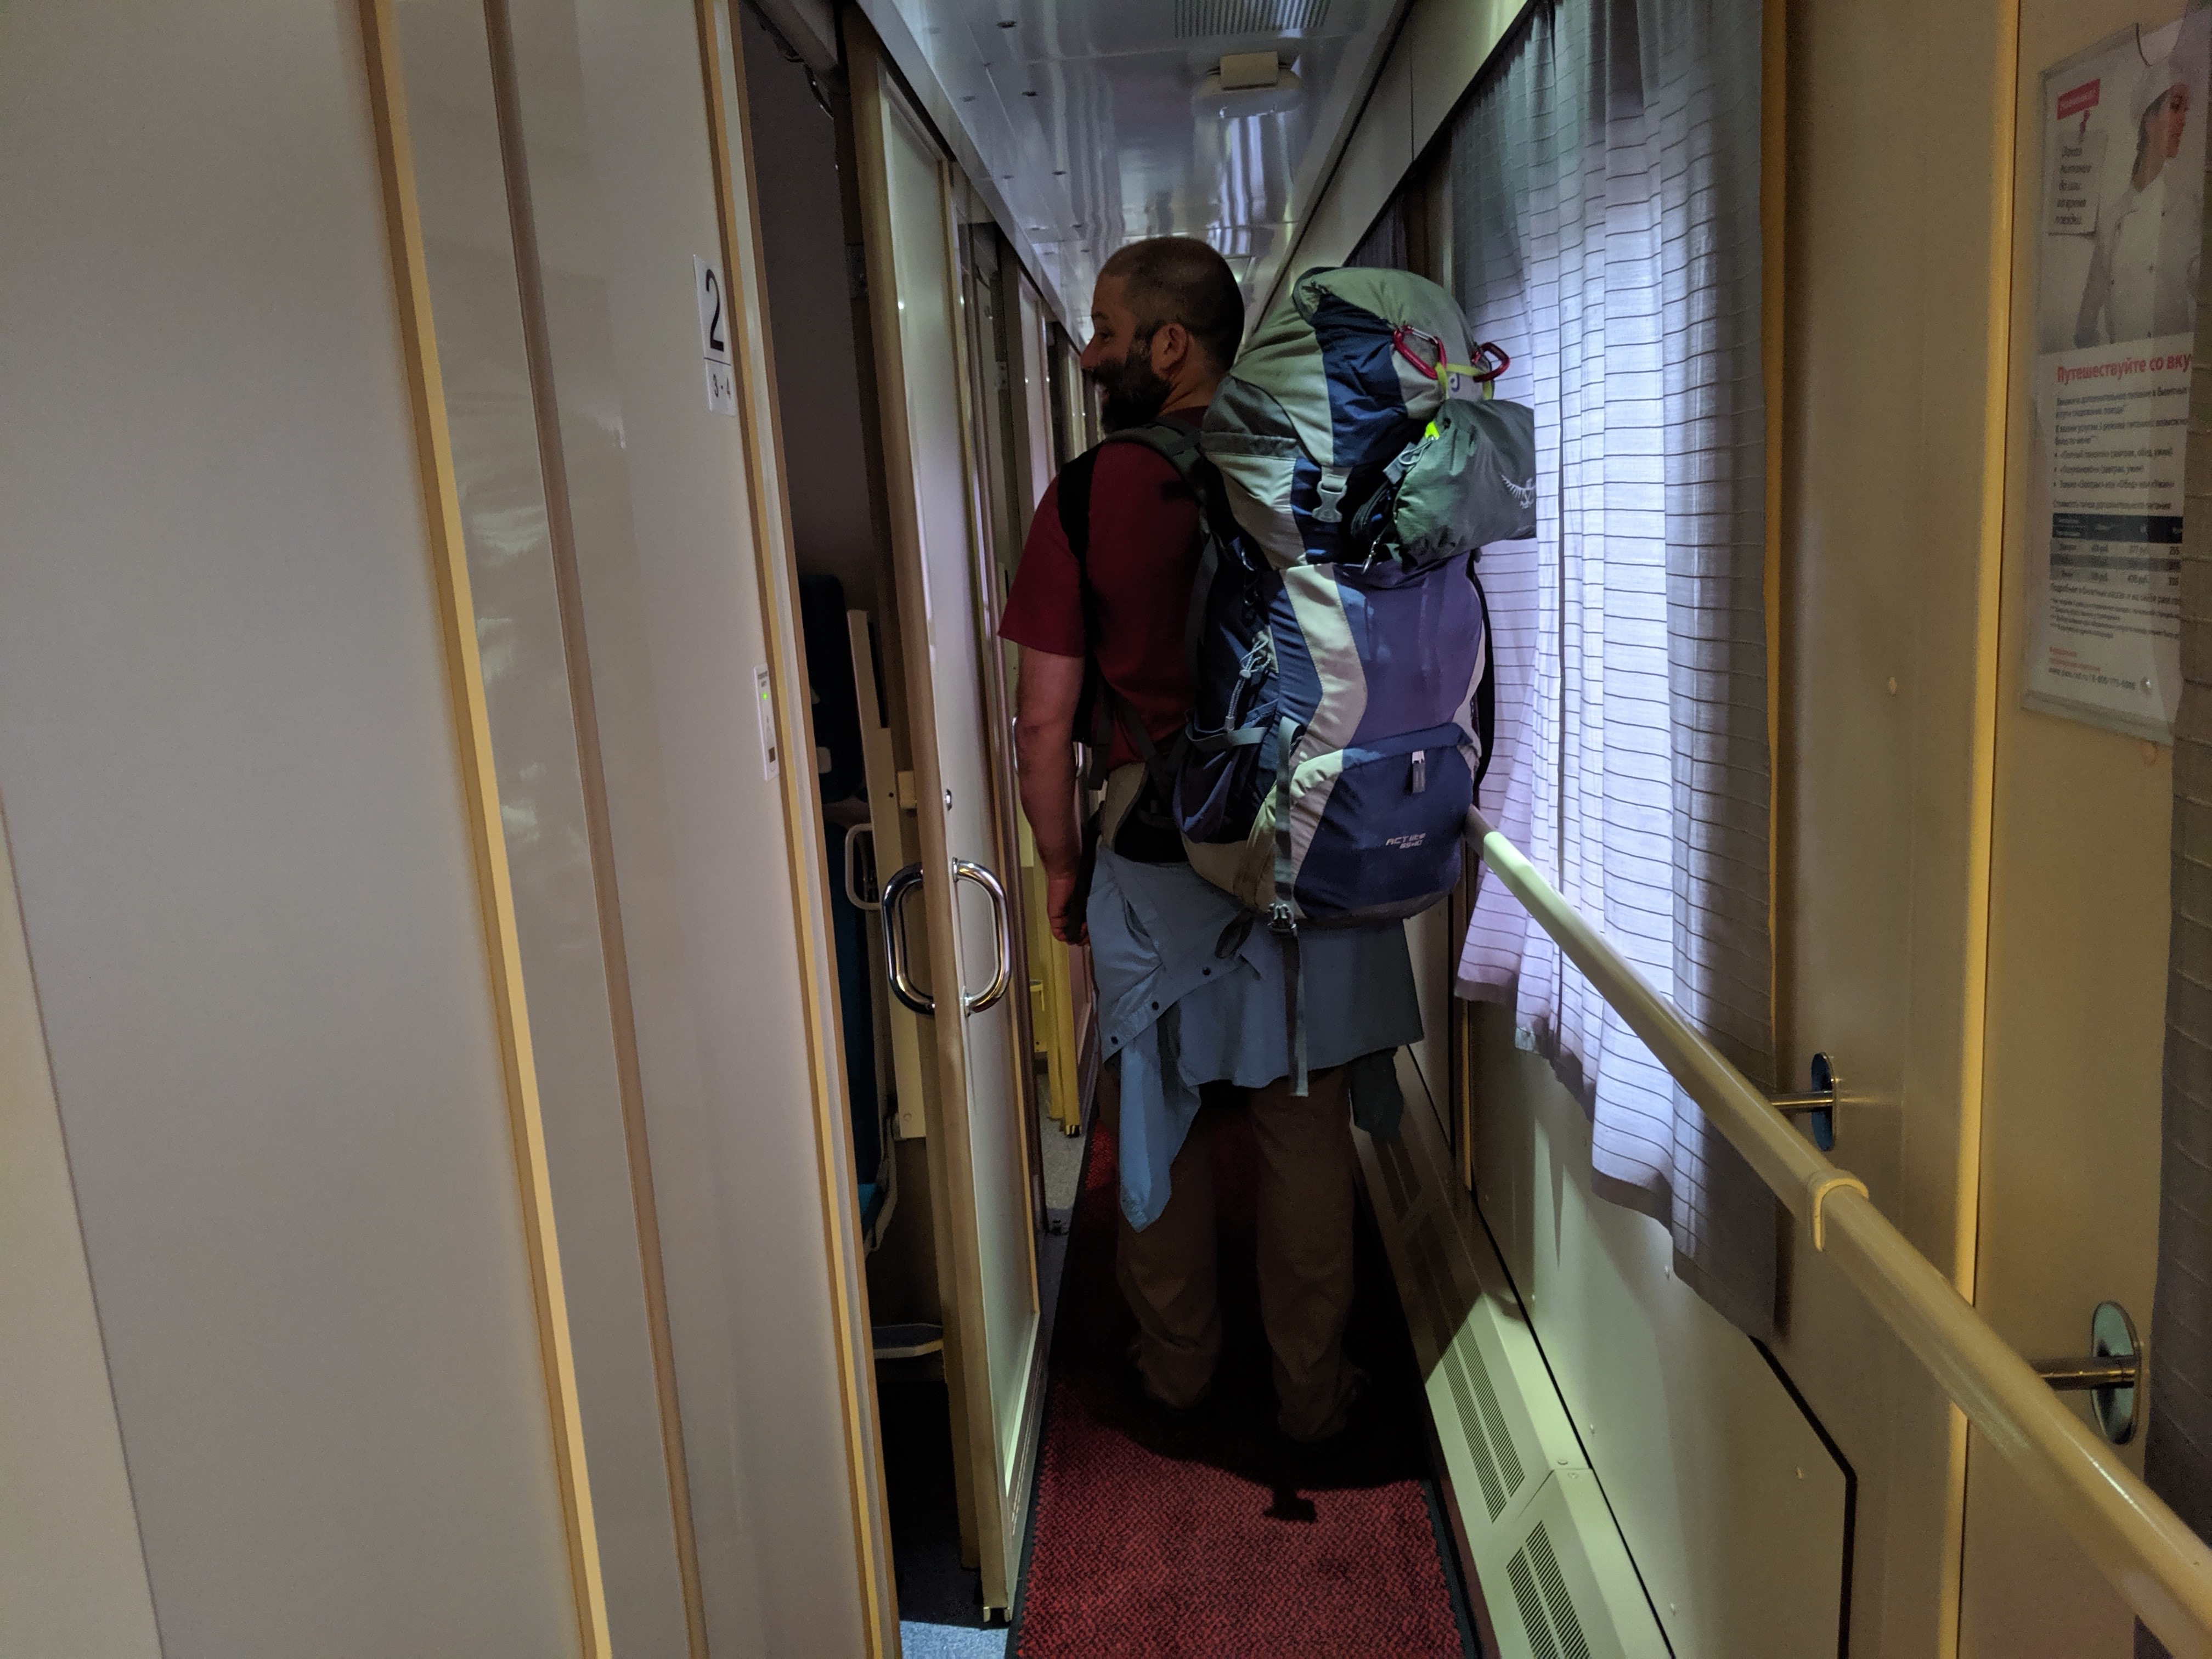 Finding our compartment on the trans-Siberian rail